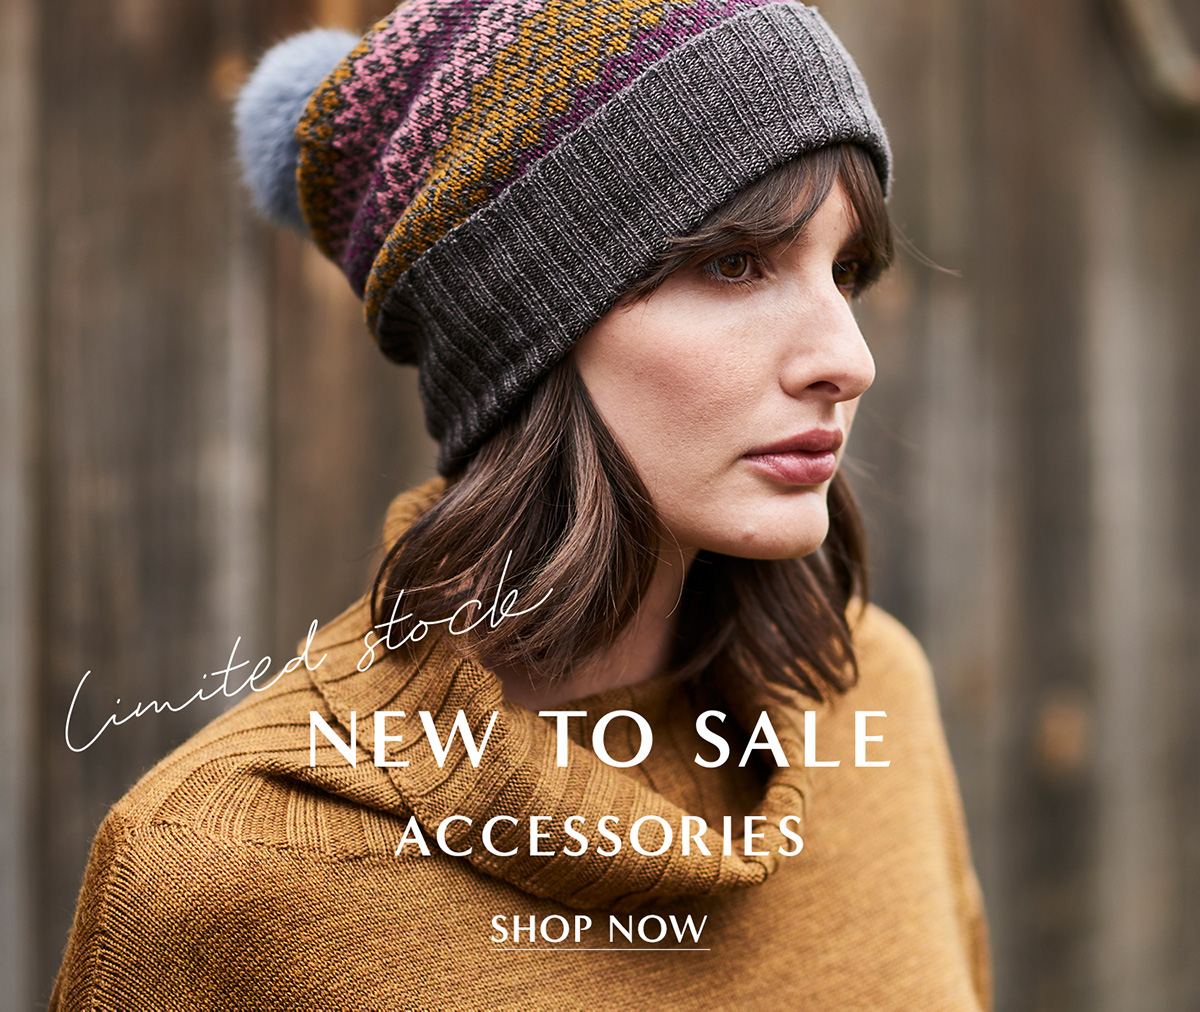 new accessories added to sale!